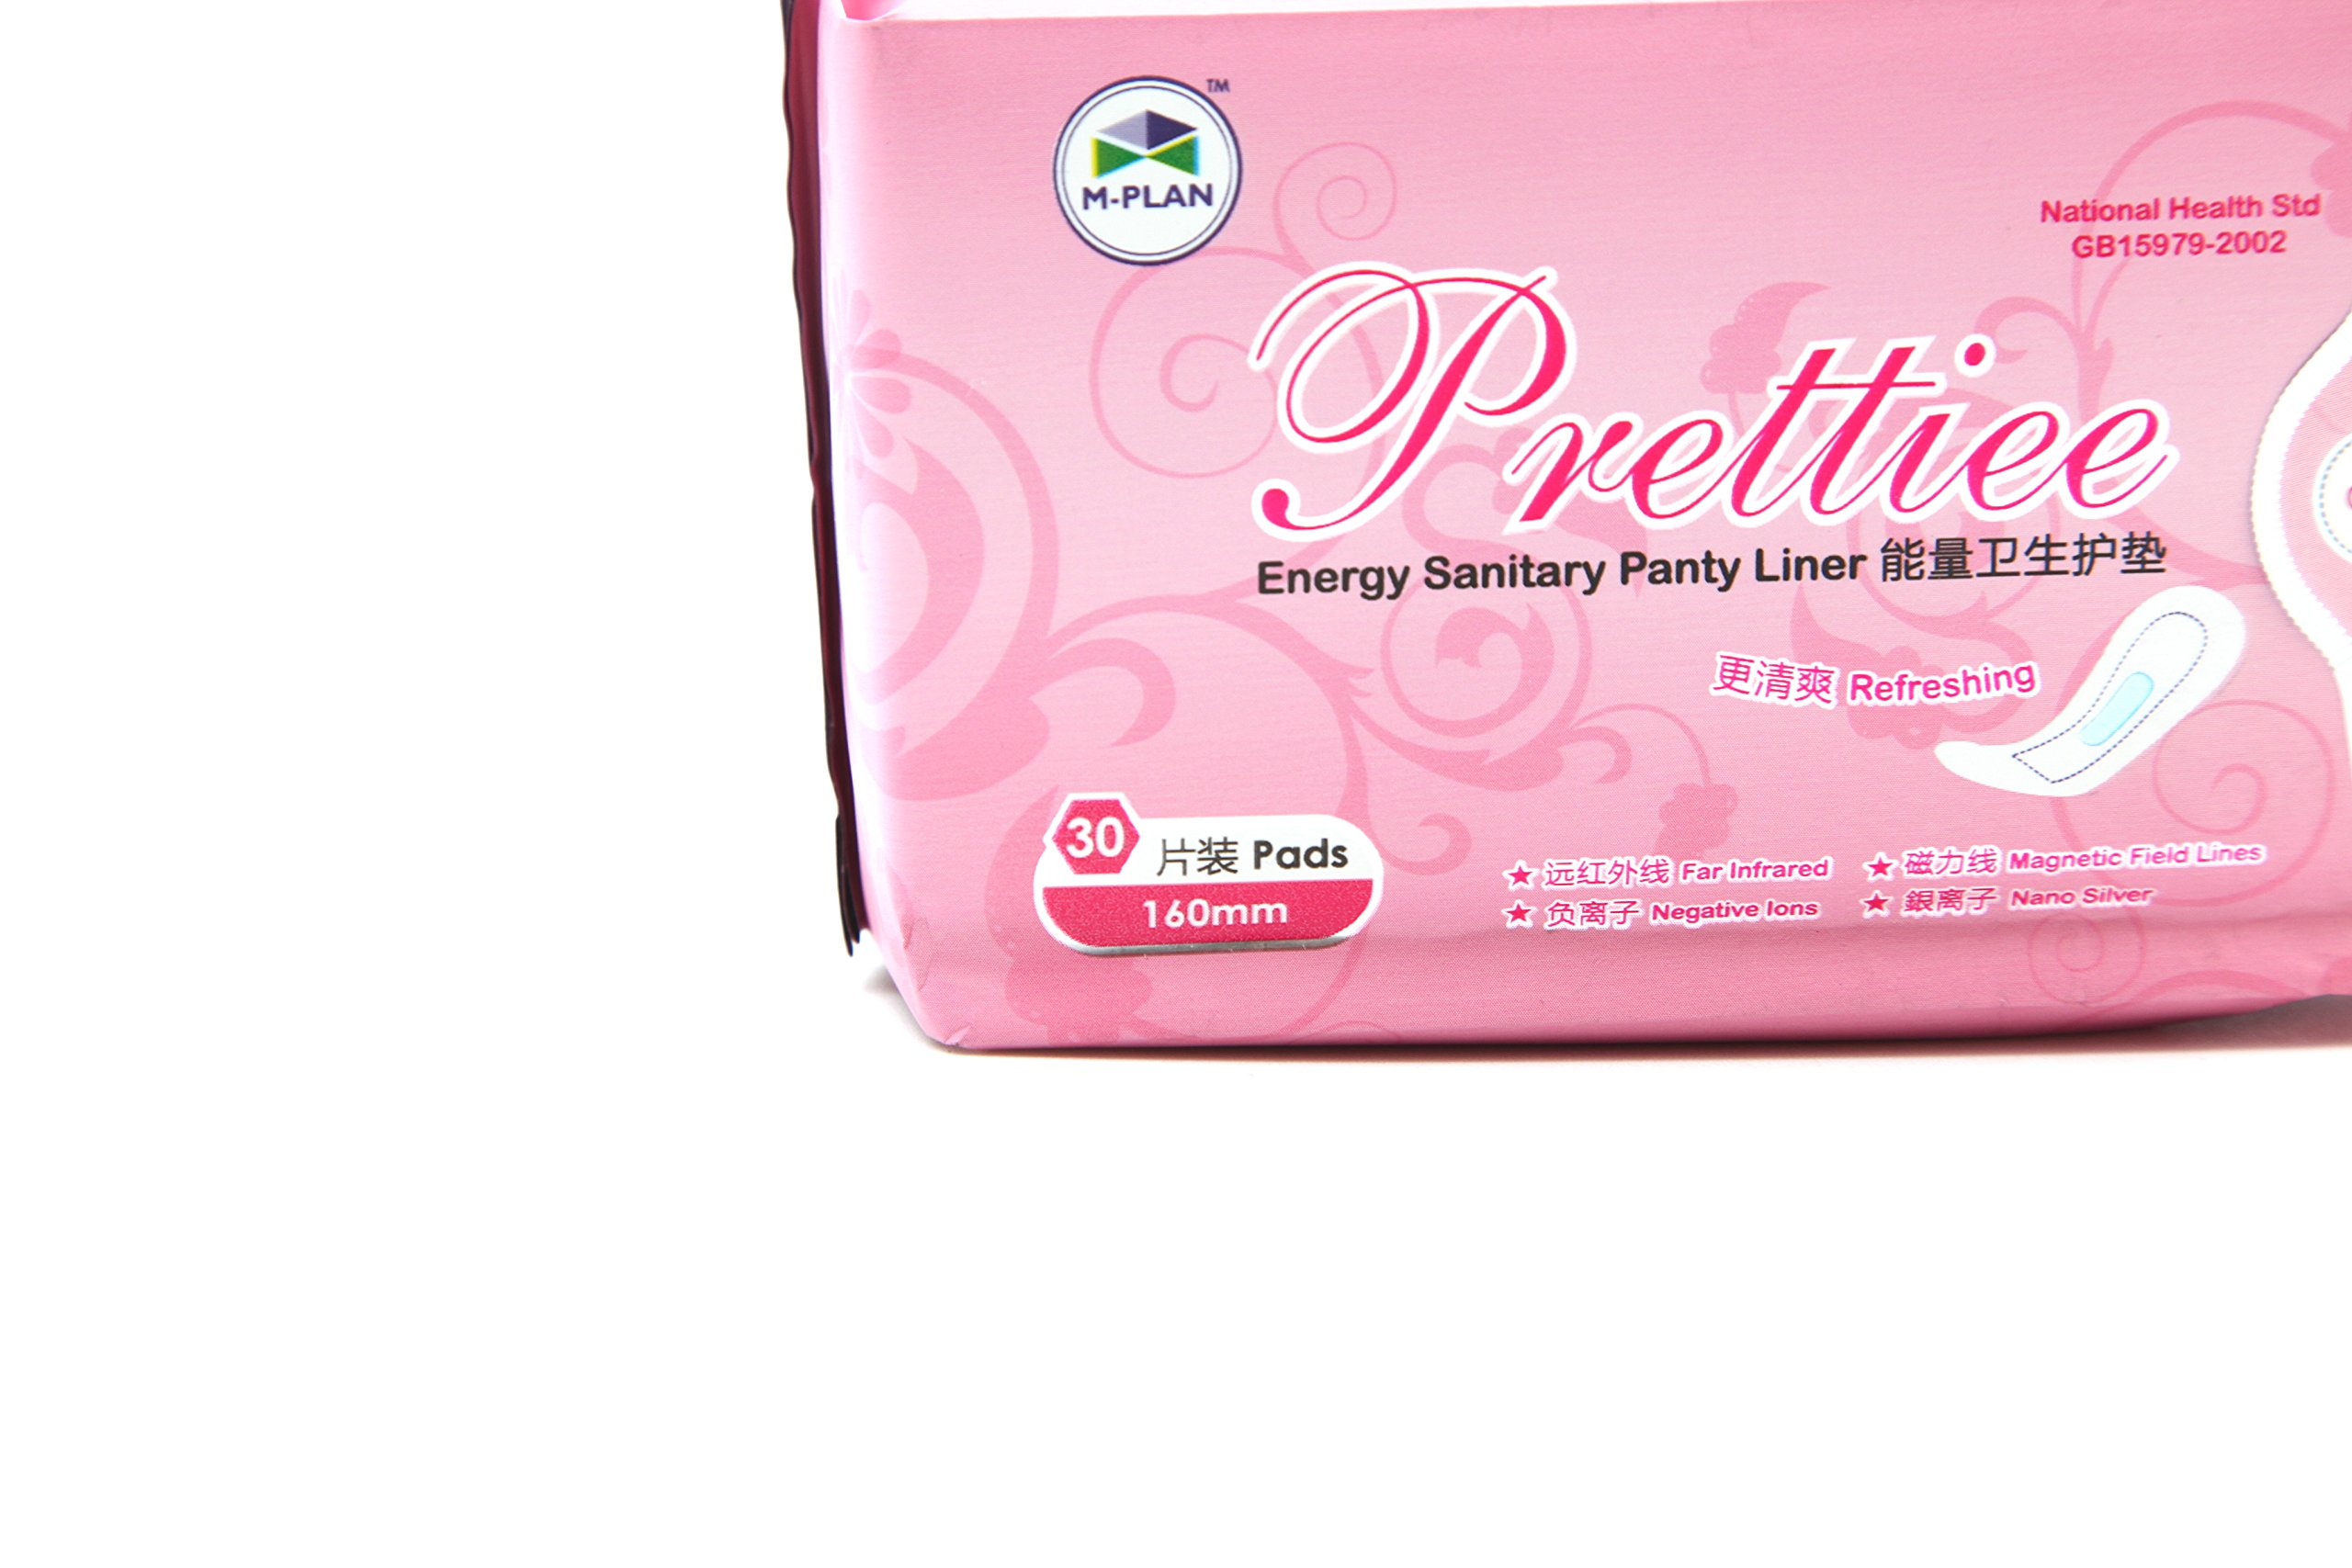 10 packs Prettiee Energy Sanitary Panty liner 160mm ( 30 Pads ) by Prettiee (Image #4)